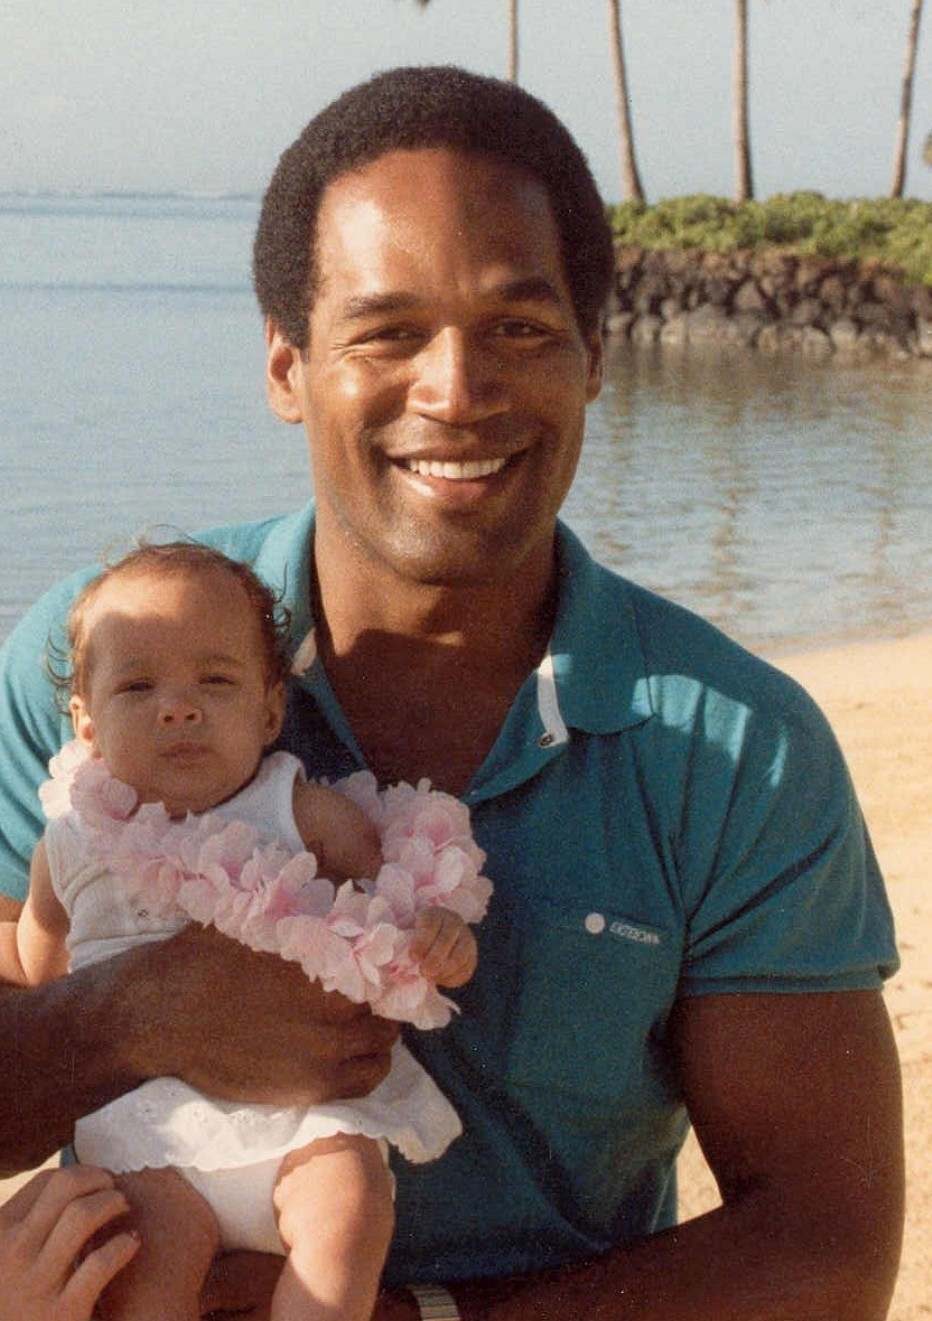 File:O.J. Simps... O J Simpson's Daughter Sydney